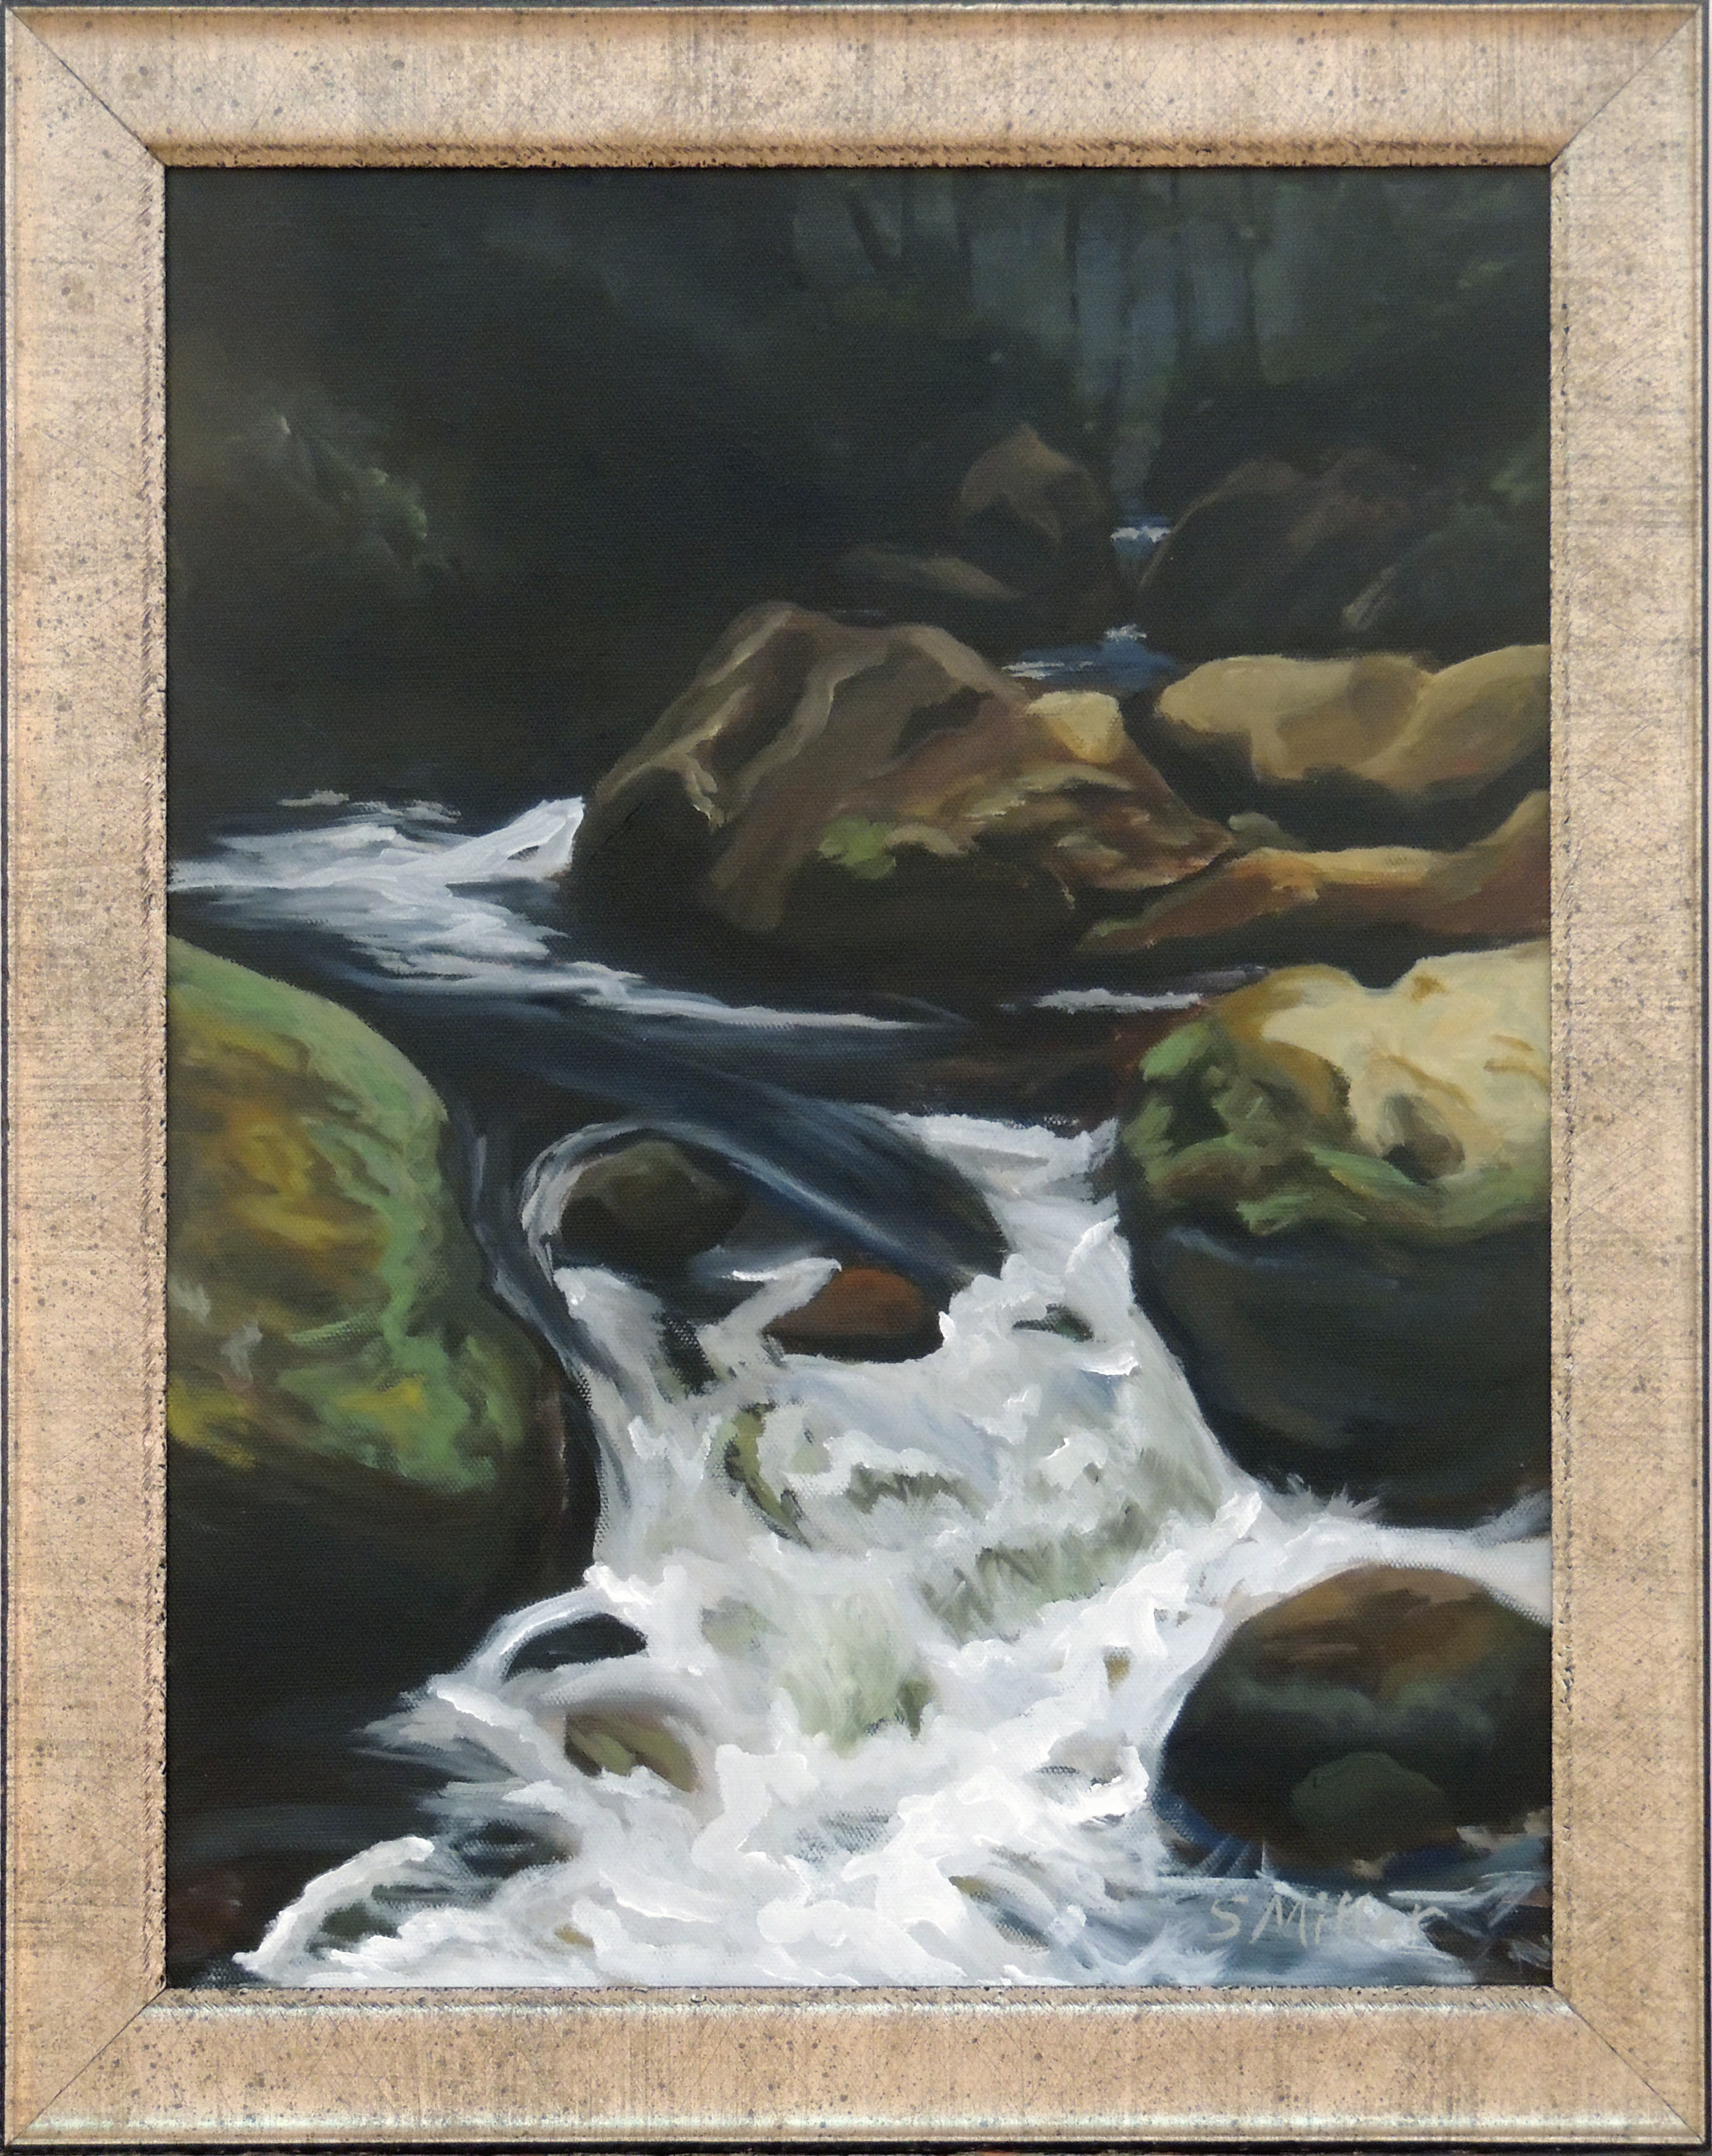 Shirley A. Miller | A RUSHING STREAM | Oil